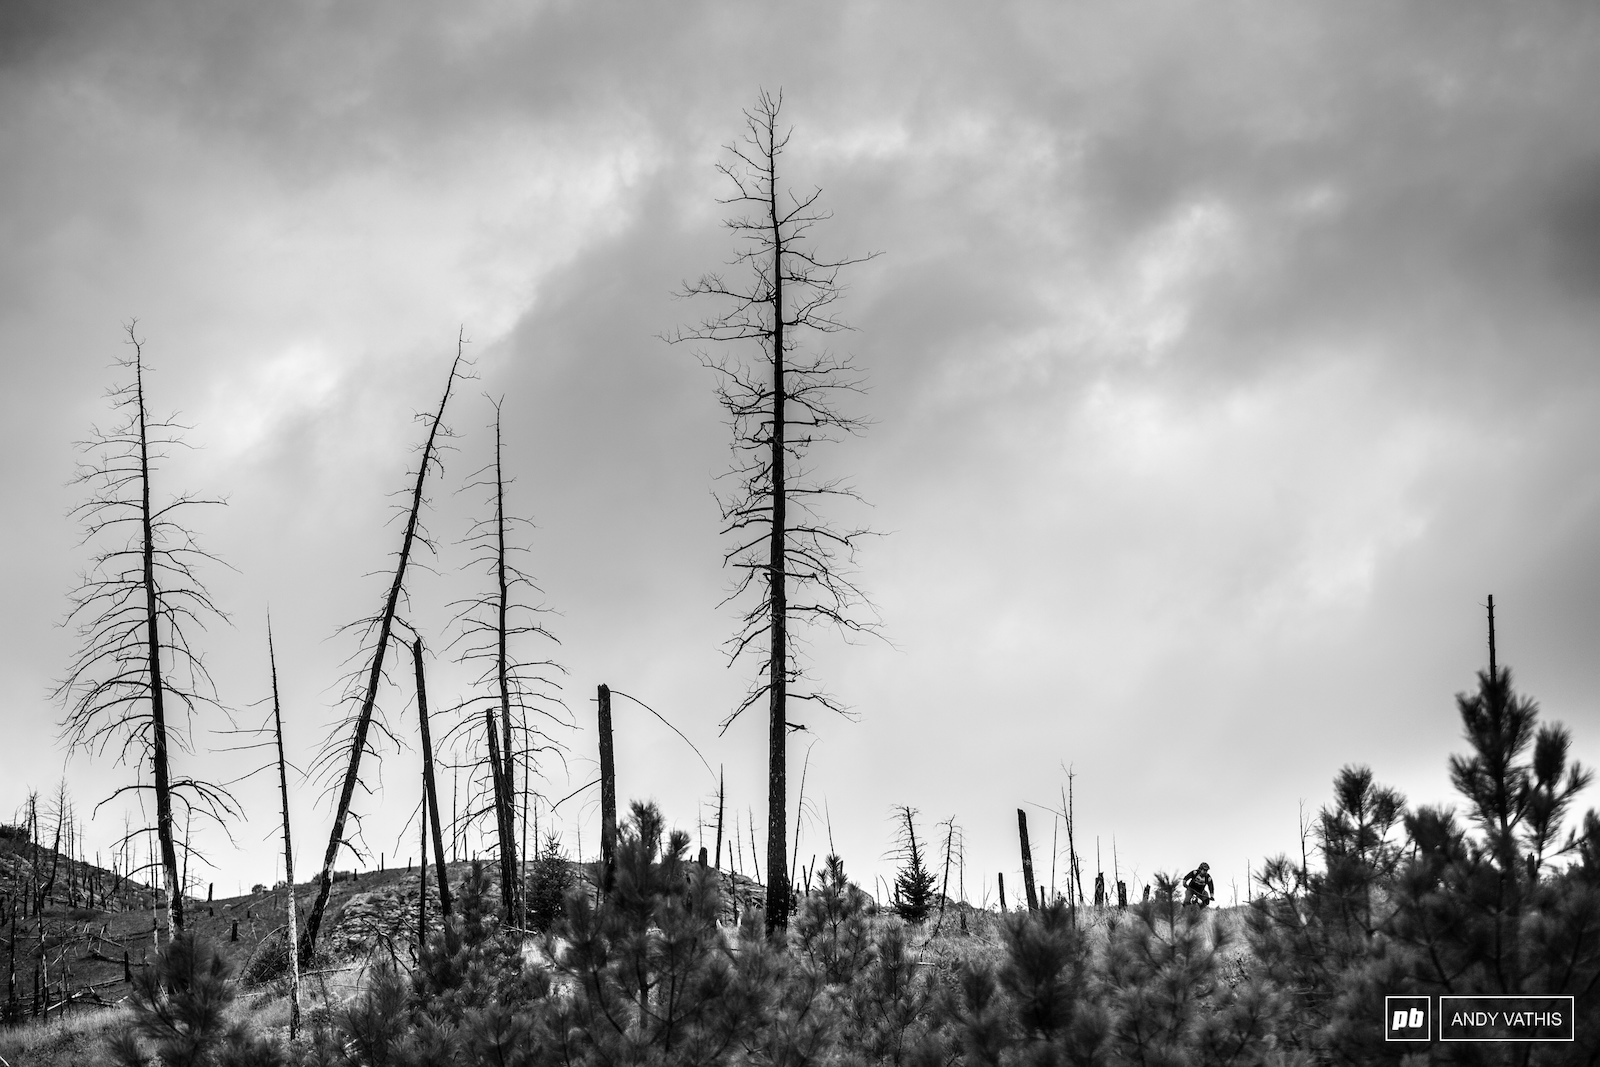 Evidence from the devastating 2017 fires that ravaged the Kamloops countryside is still visible while the surrounding vegetation slowly gets back on its feet.